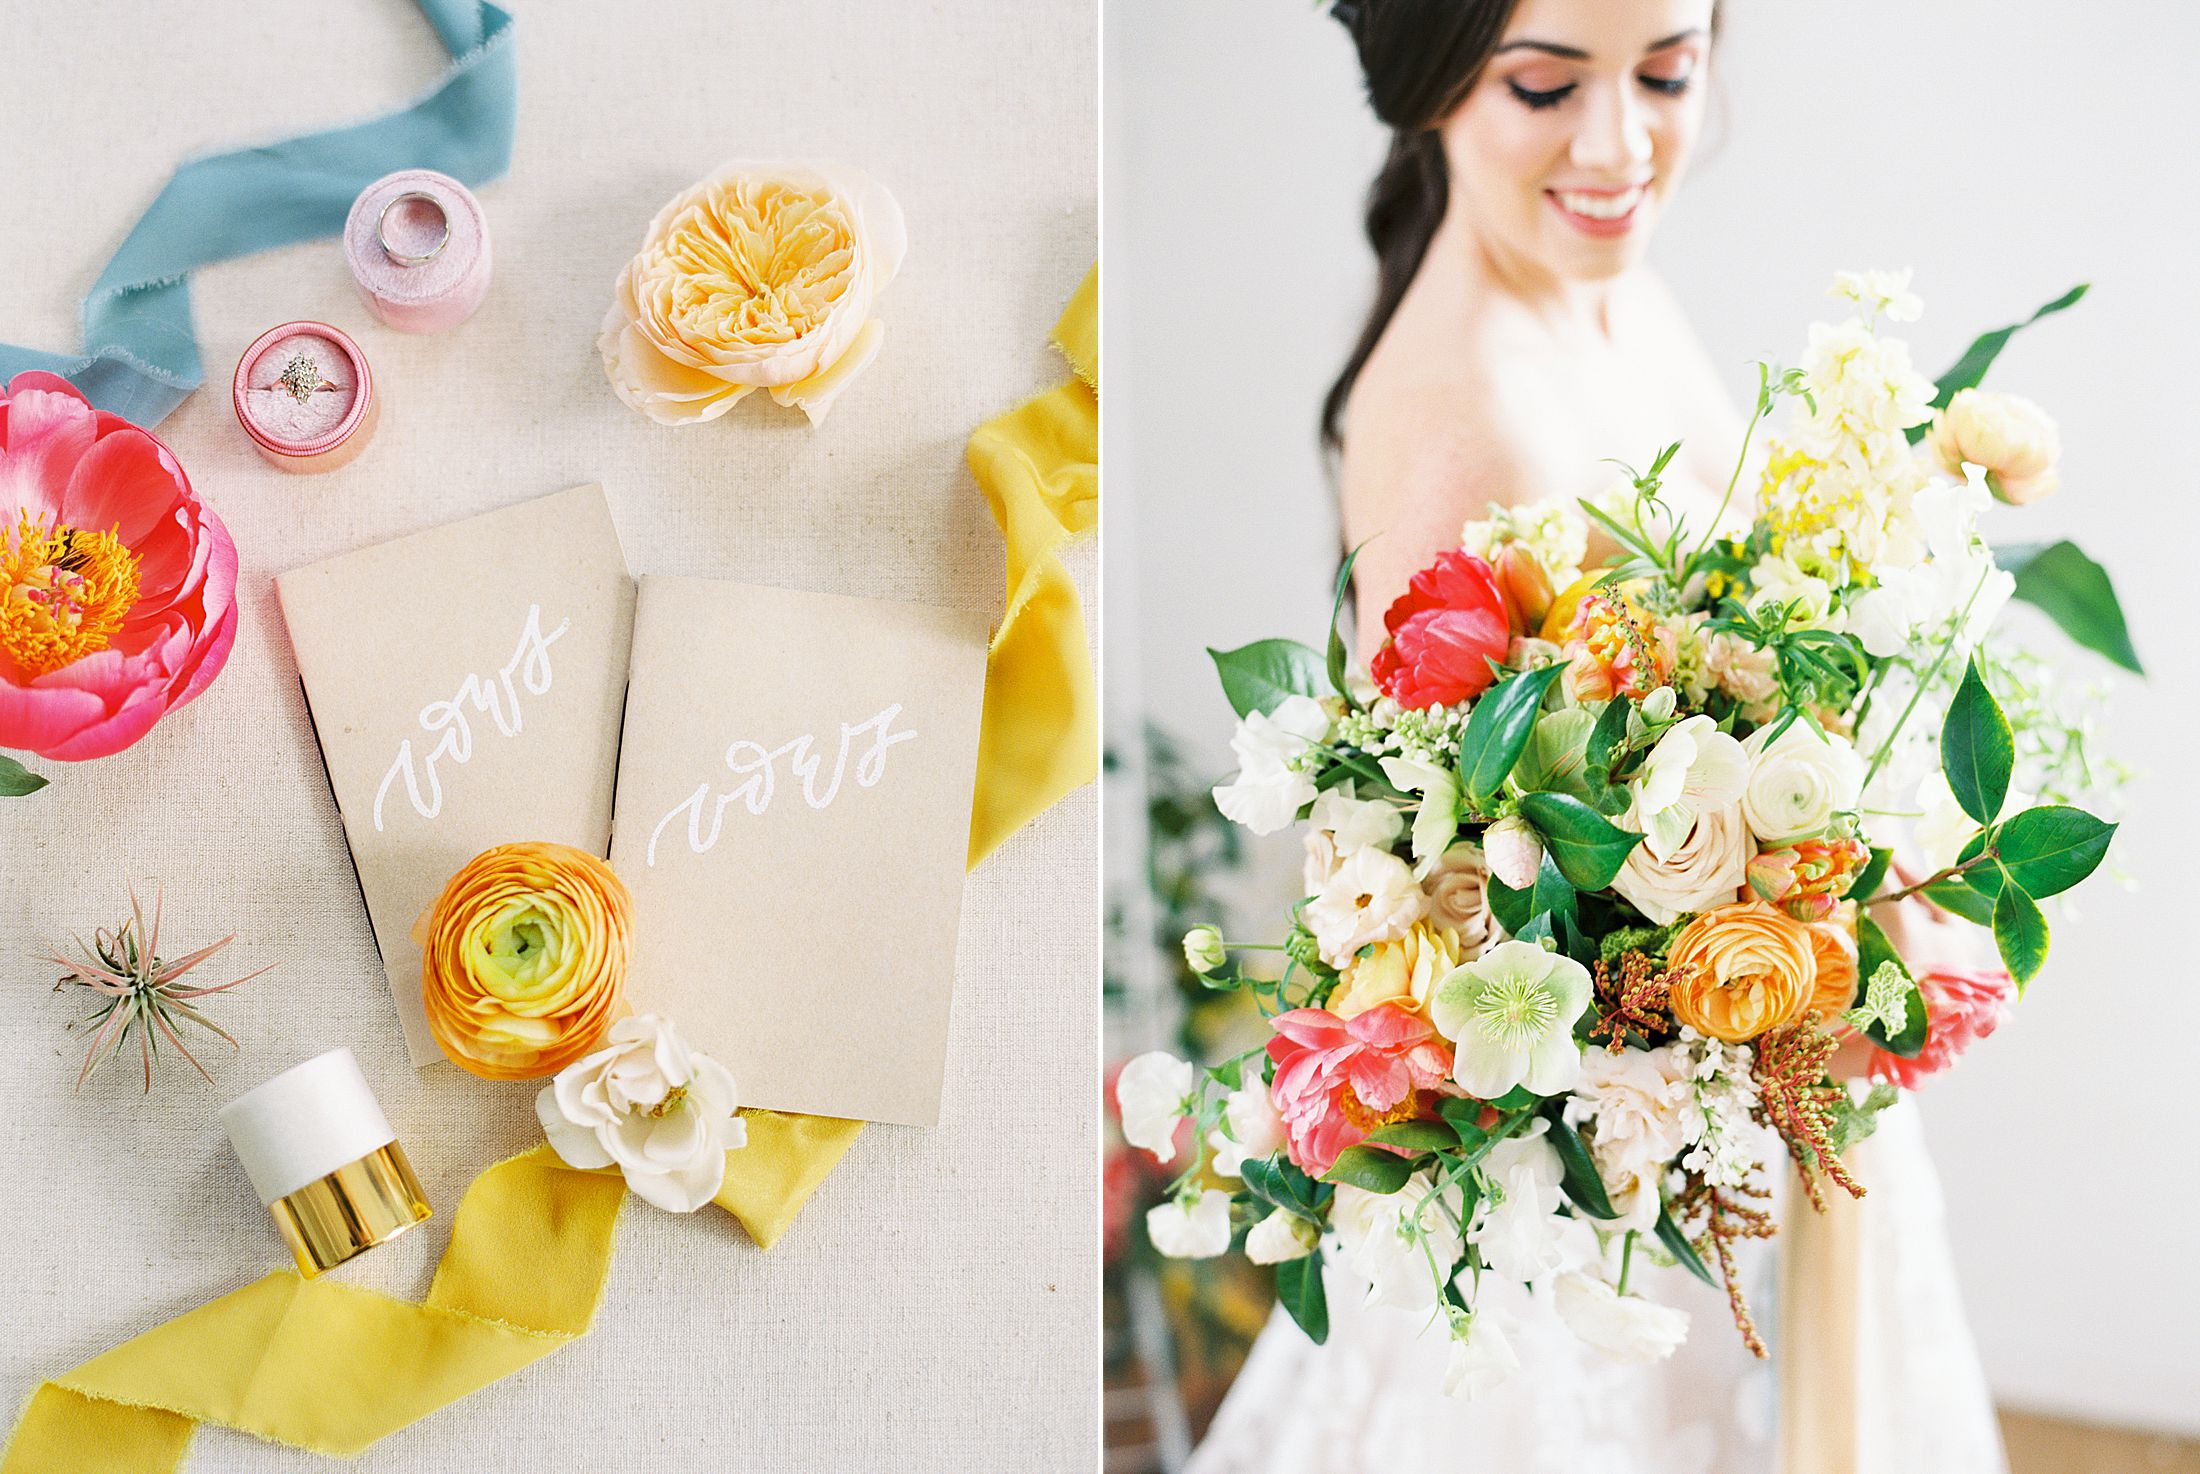 Bay Area Spring Wedding Inspiration - Ashley Baumgartner - Inspired By This - Party Crush Studio and Lens of Lenox Videography - Bay Area Wedding Photography_0002.jpg